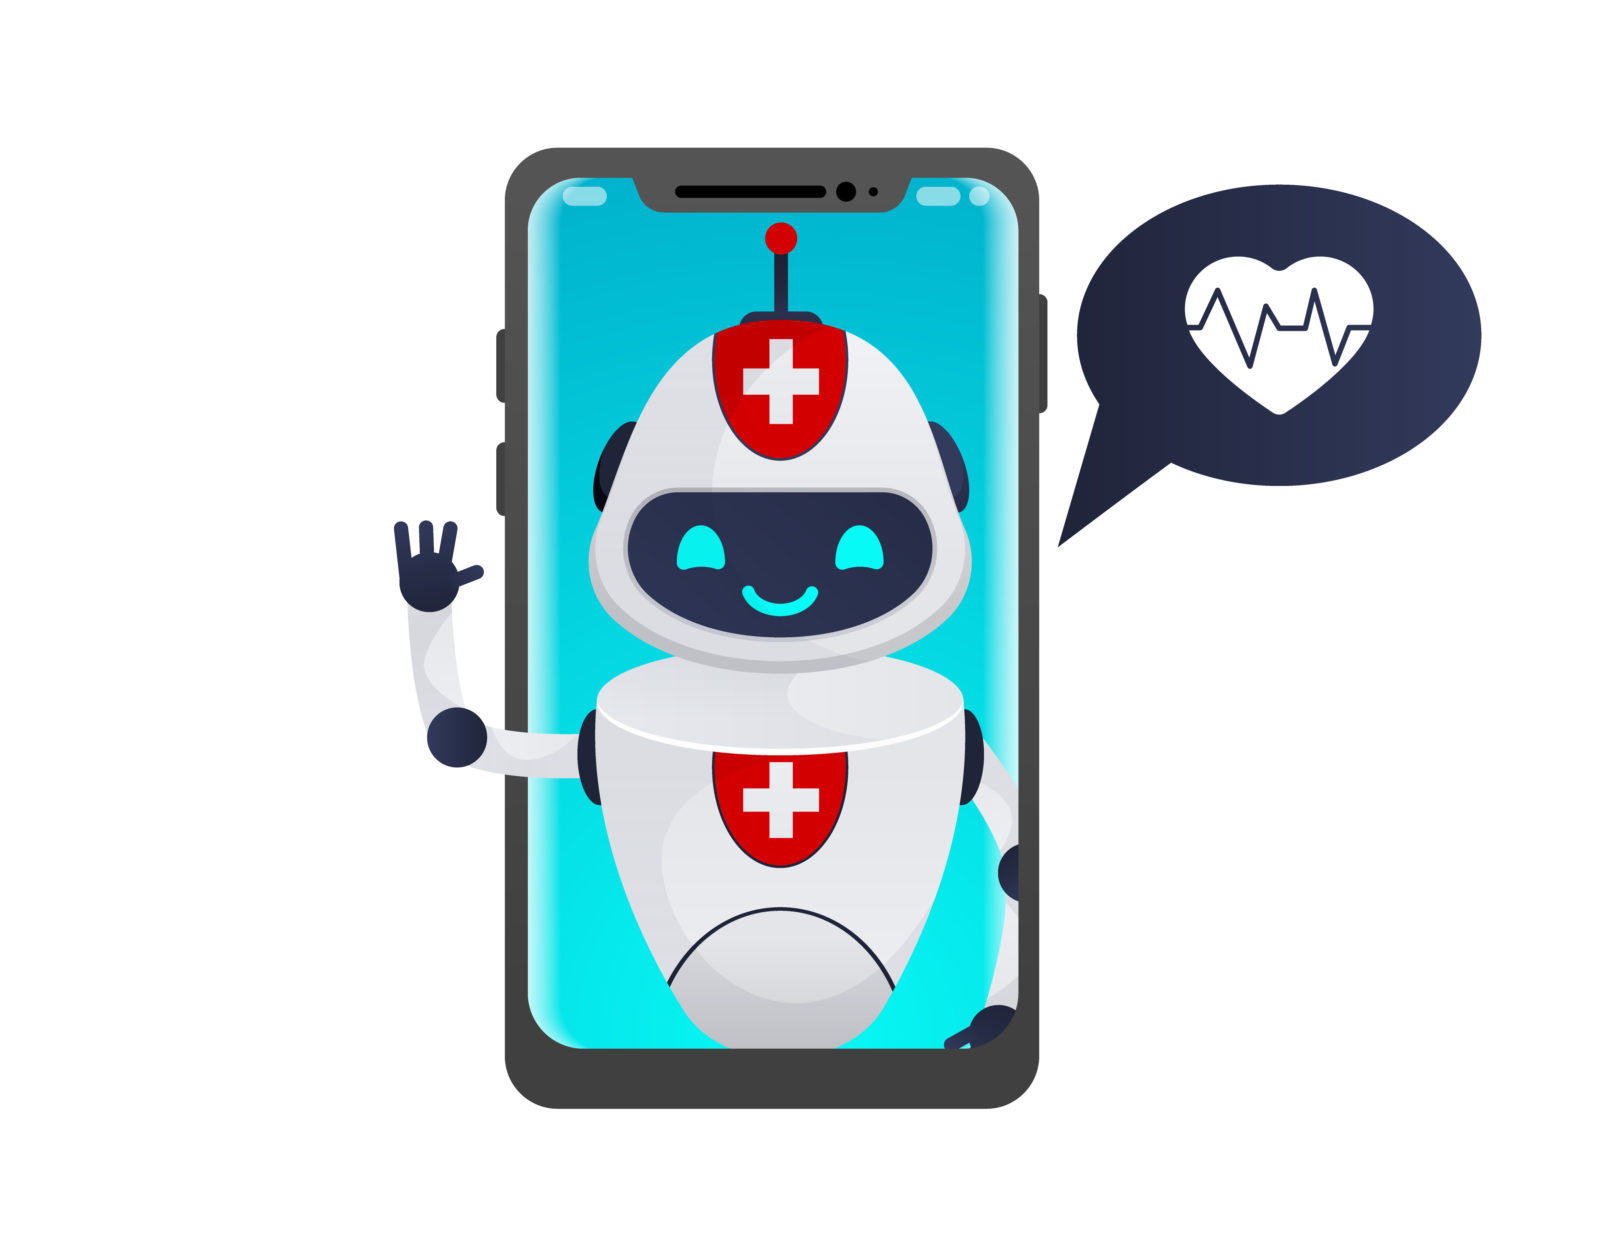 Public accuracy concerns could hold back AI in the healthcare sector